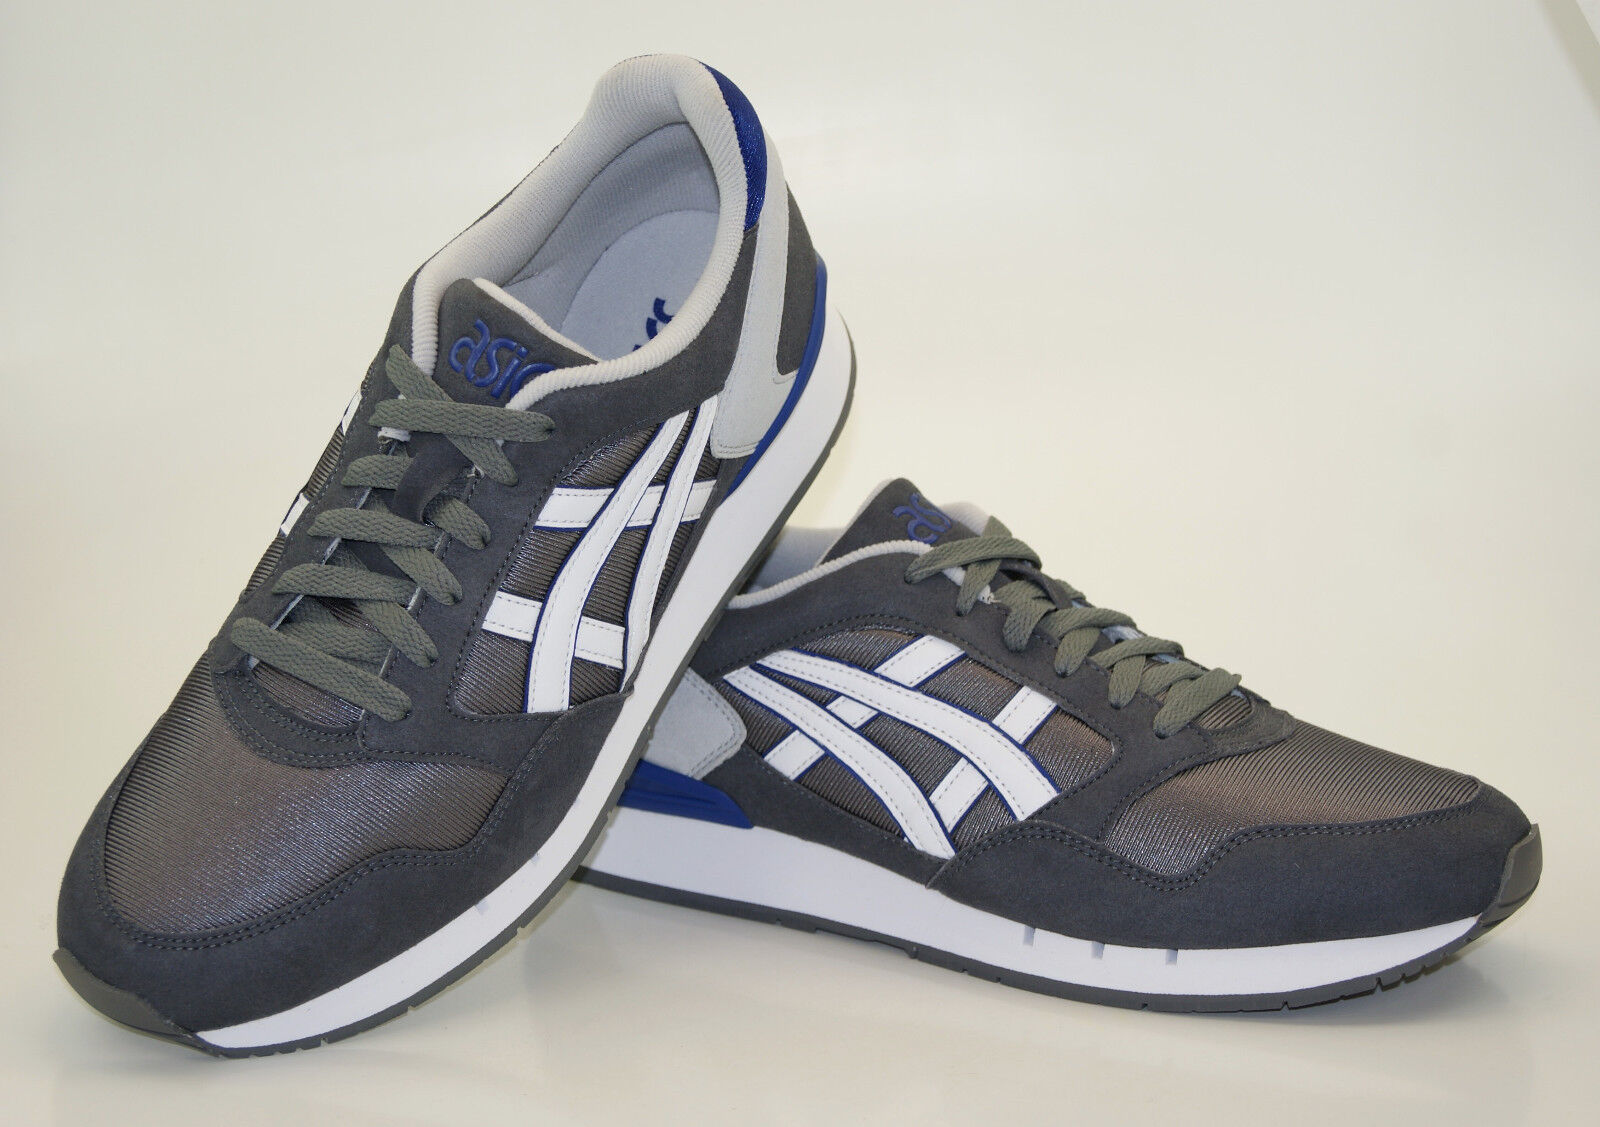 Asics Gel Atlantis Trainers Sports Shoes Sneakers Running Shoes Shoes H5A0N 1101